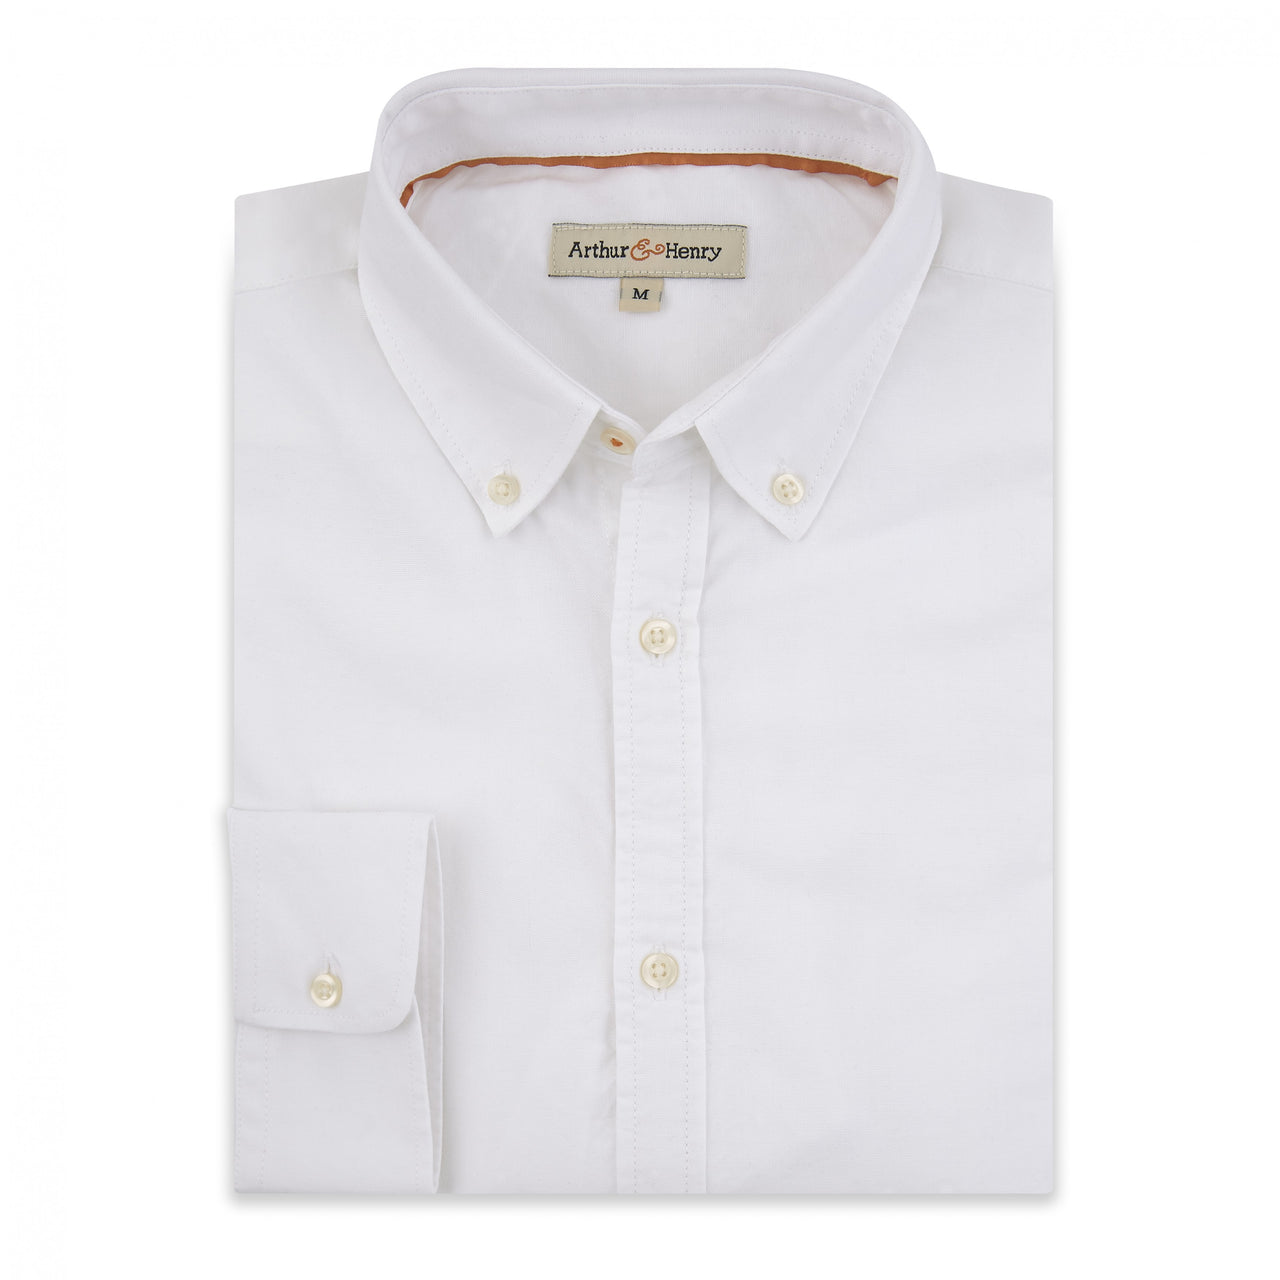 White Oxford Men's Shirt with button-down collar. Fairtrade and organic cotton.